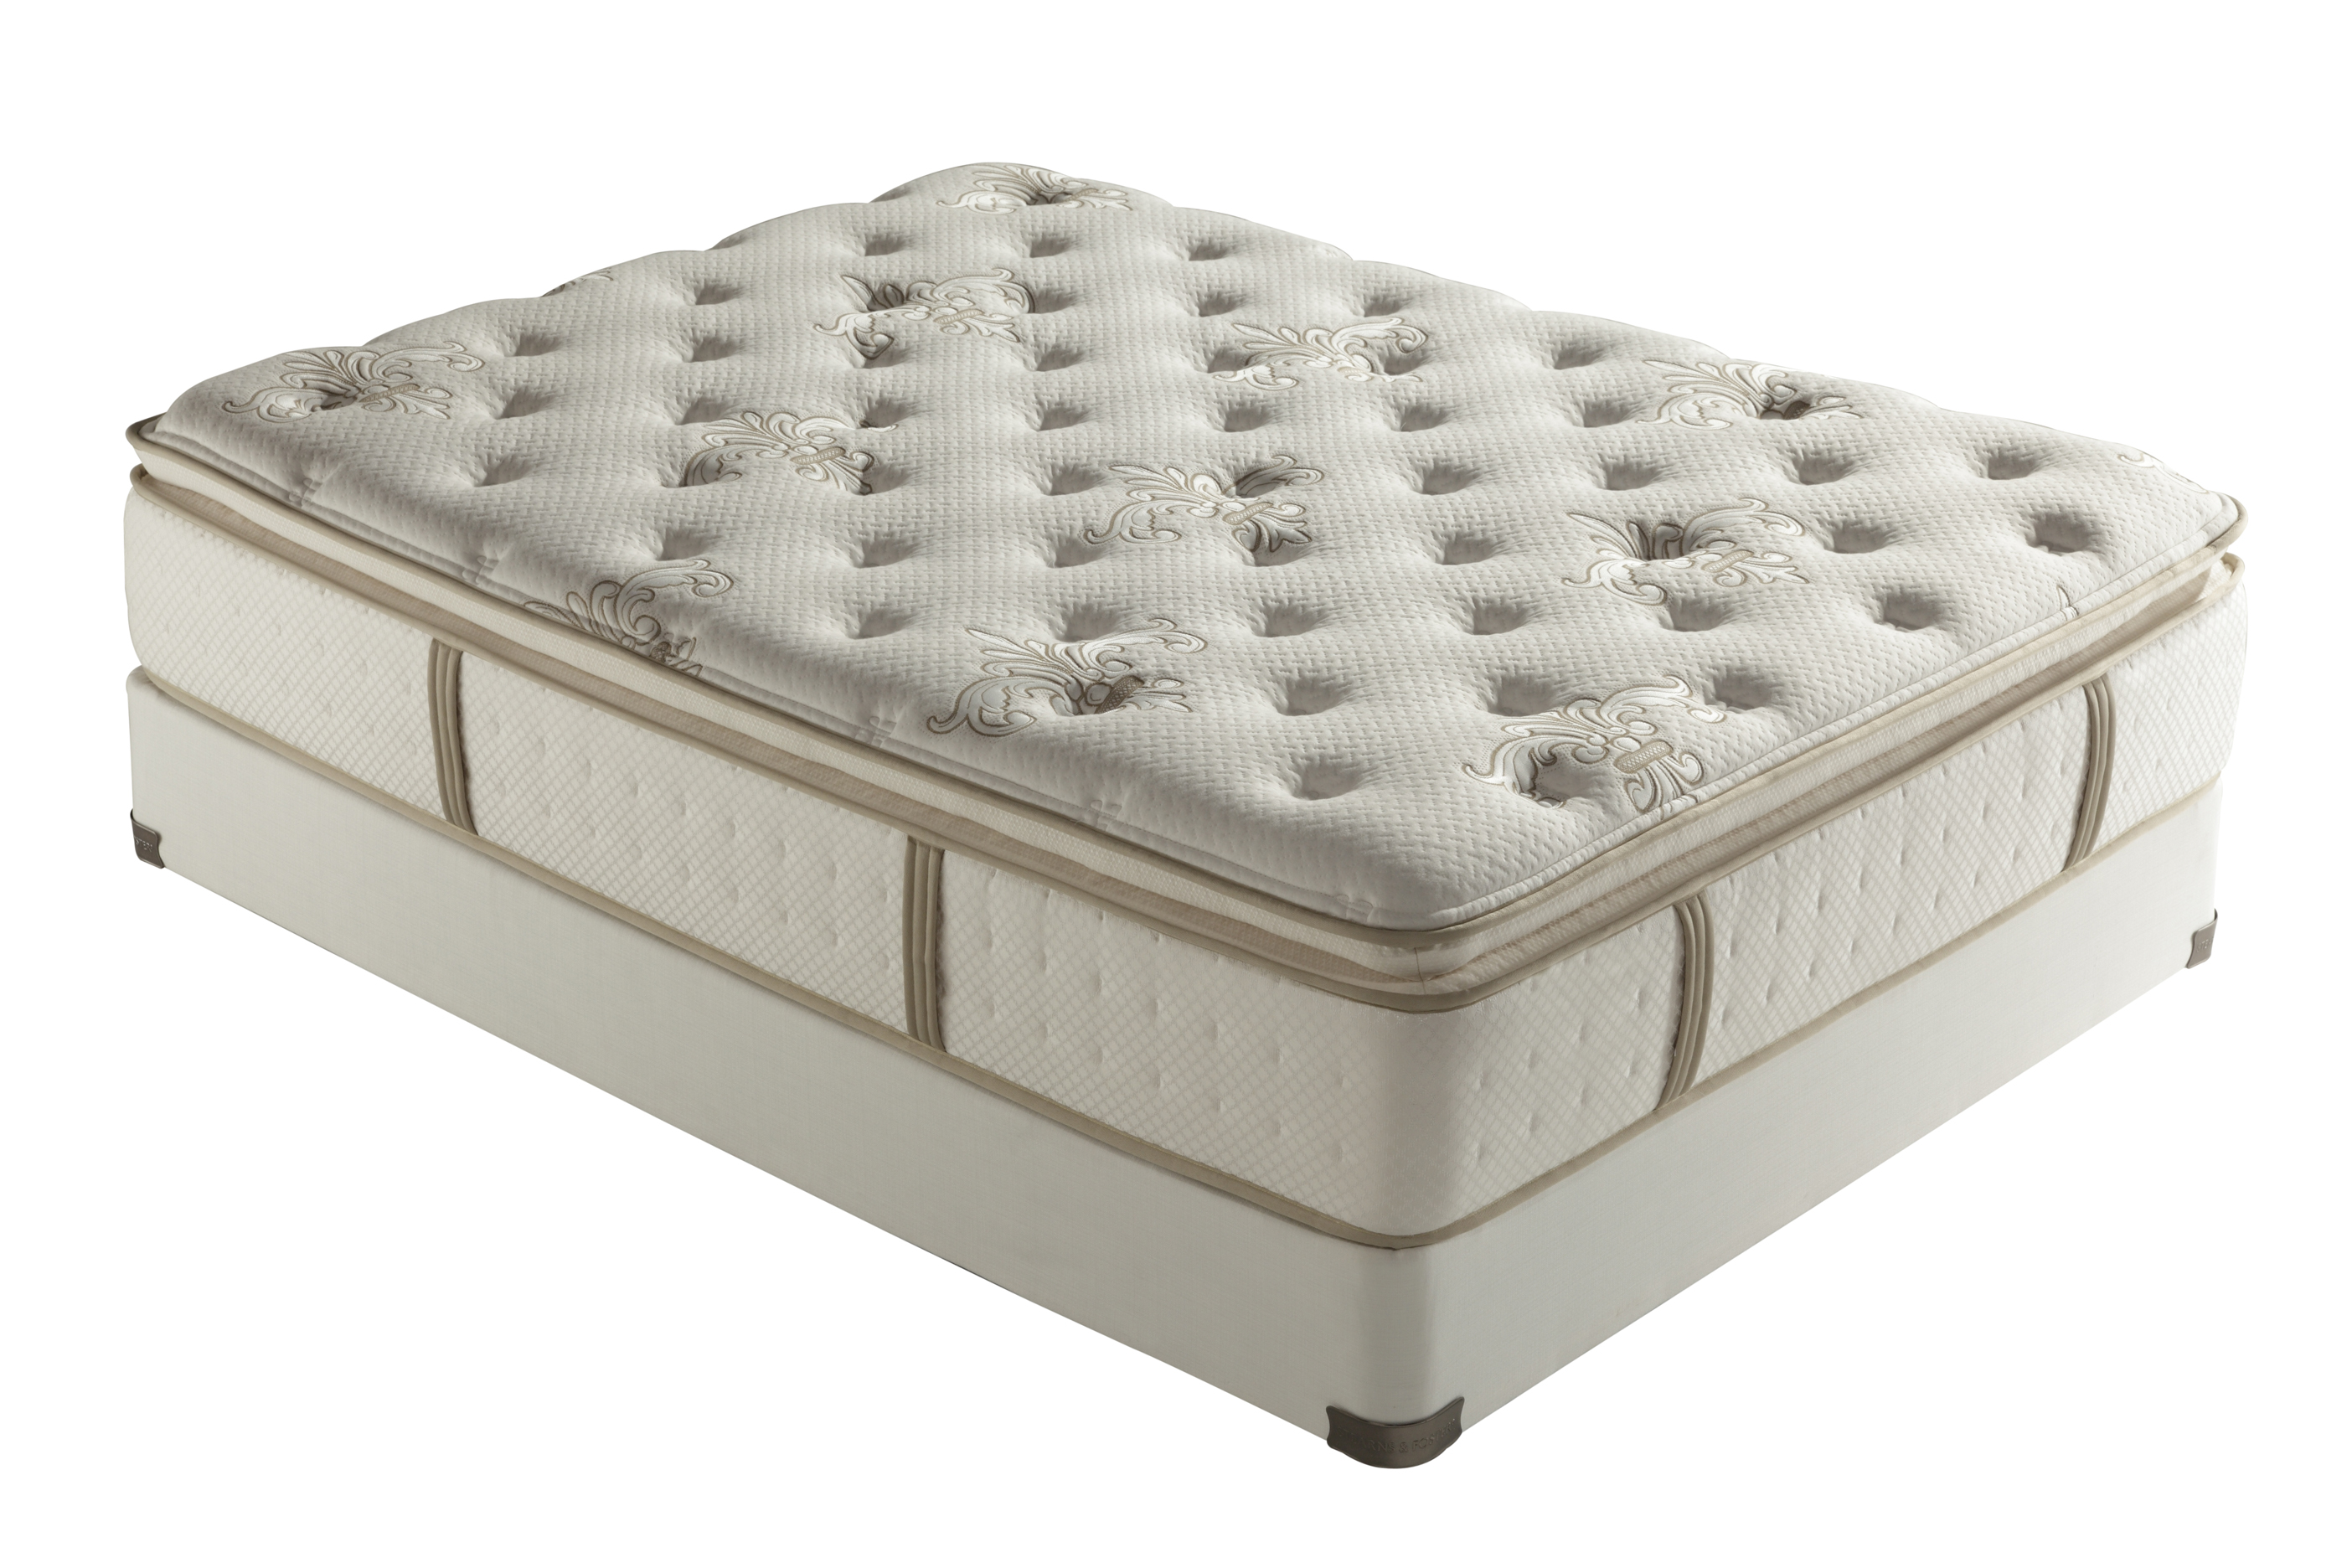 stearns and foster latex mattress - Shop for and Buy